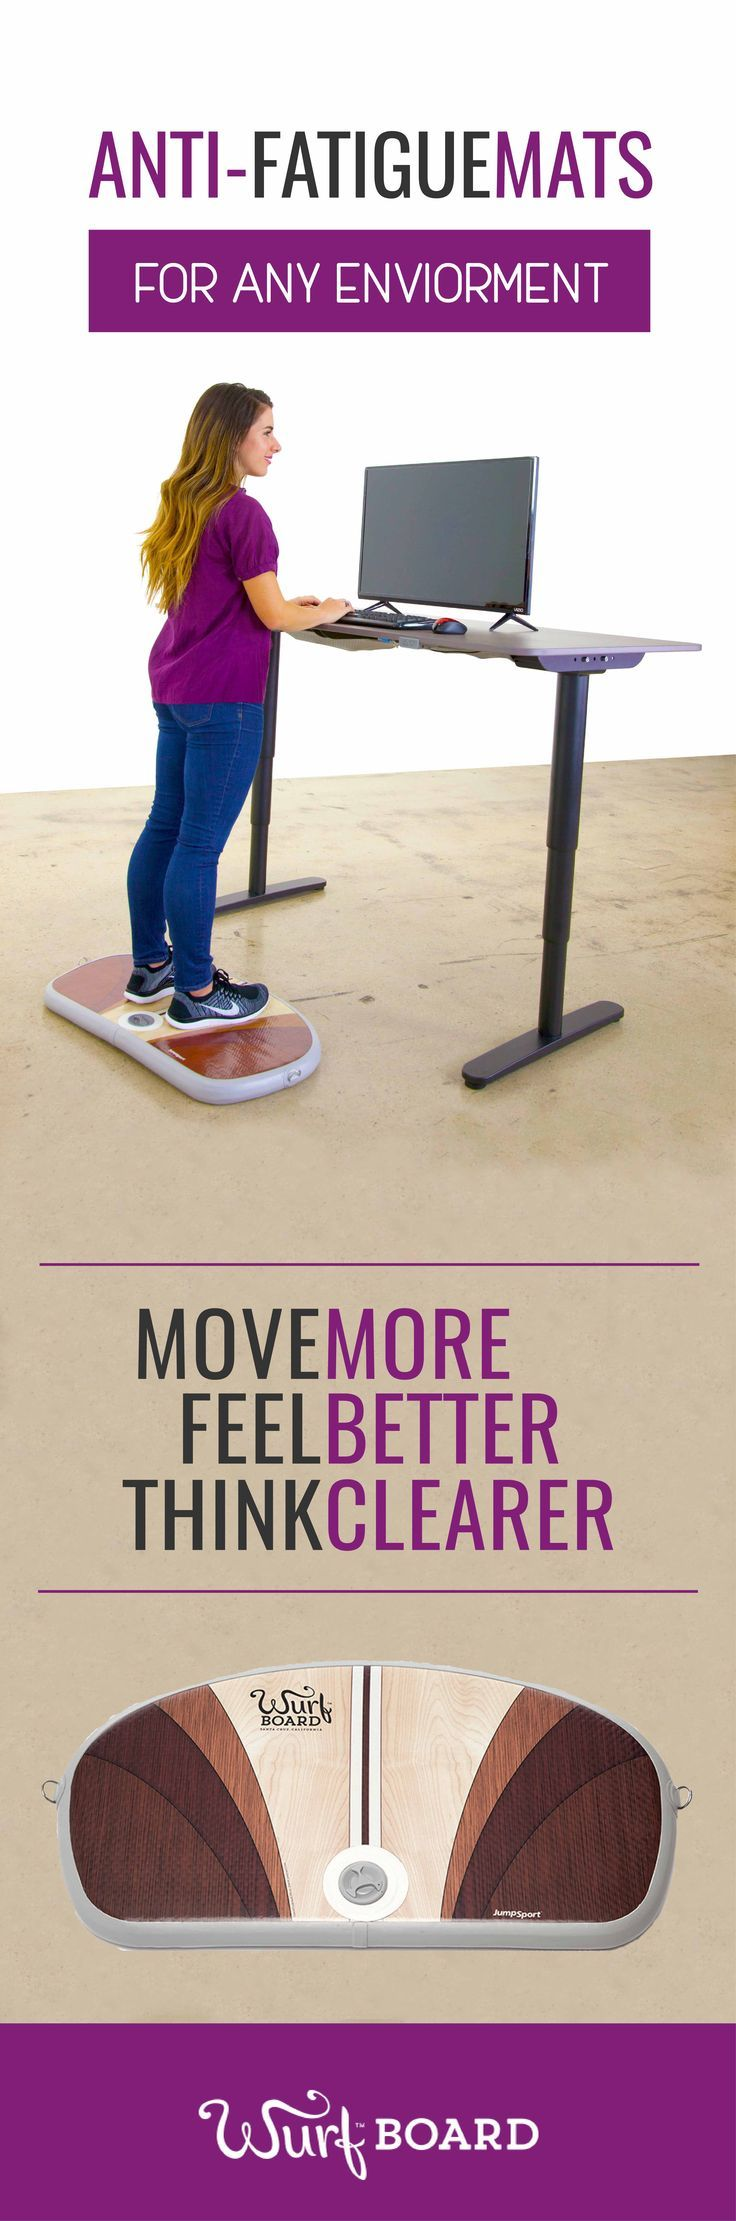 Burn calories at work with the Wurf Board anti fatigue mat for standing desks! Wurf is a highly supportive, lively, air-spring surface that encourages standing desk users to make continuous micro movements, which improves blood-flow so you can stand comfortably much longer. These subtle movements improve posture; strengthen feet, legs, core, and back; and raise alertness, focus, and productivity. Who doesn't want that throughout their workday? Learn more at: www.wurf.com/